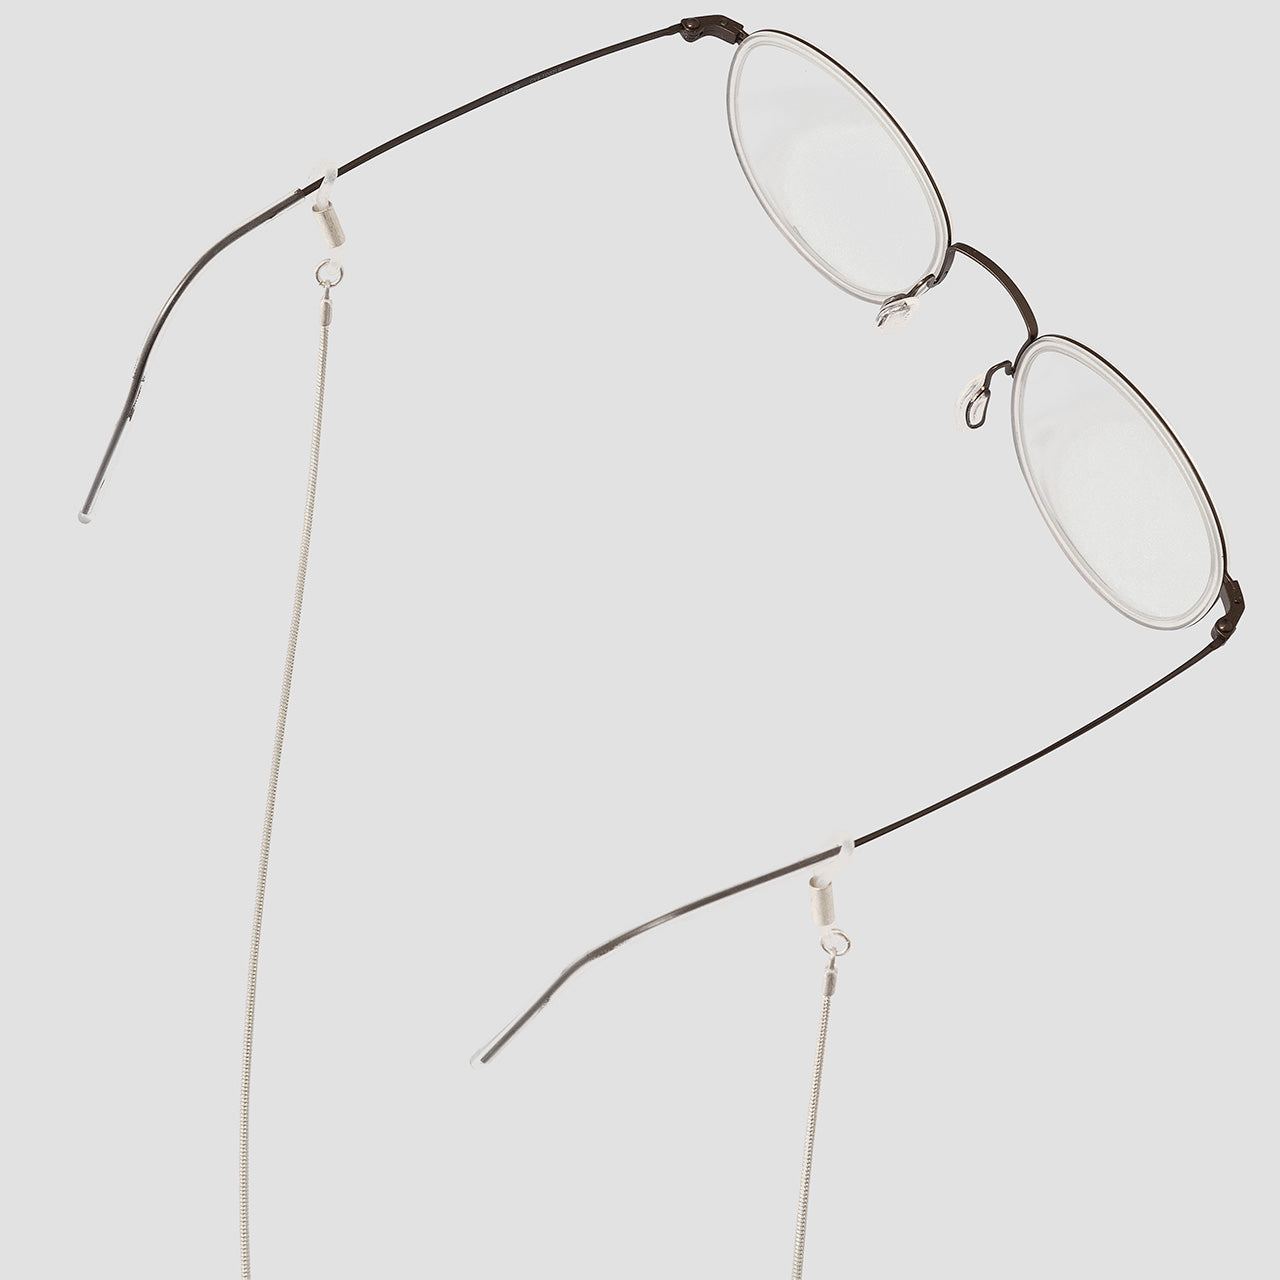 KNOK Silver Plated Baem Glasses chain shown with glasses